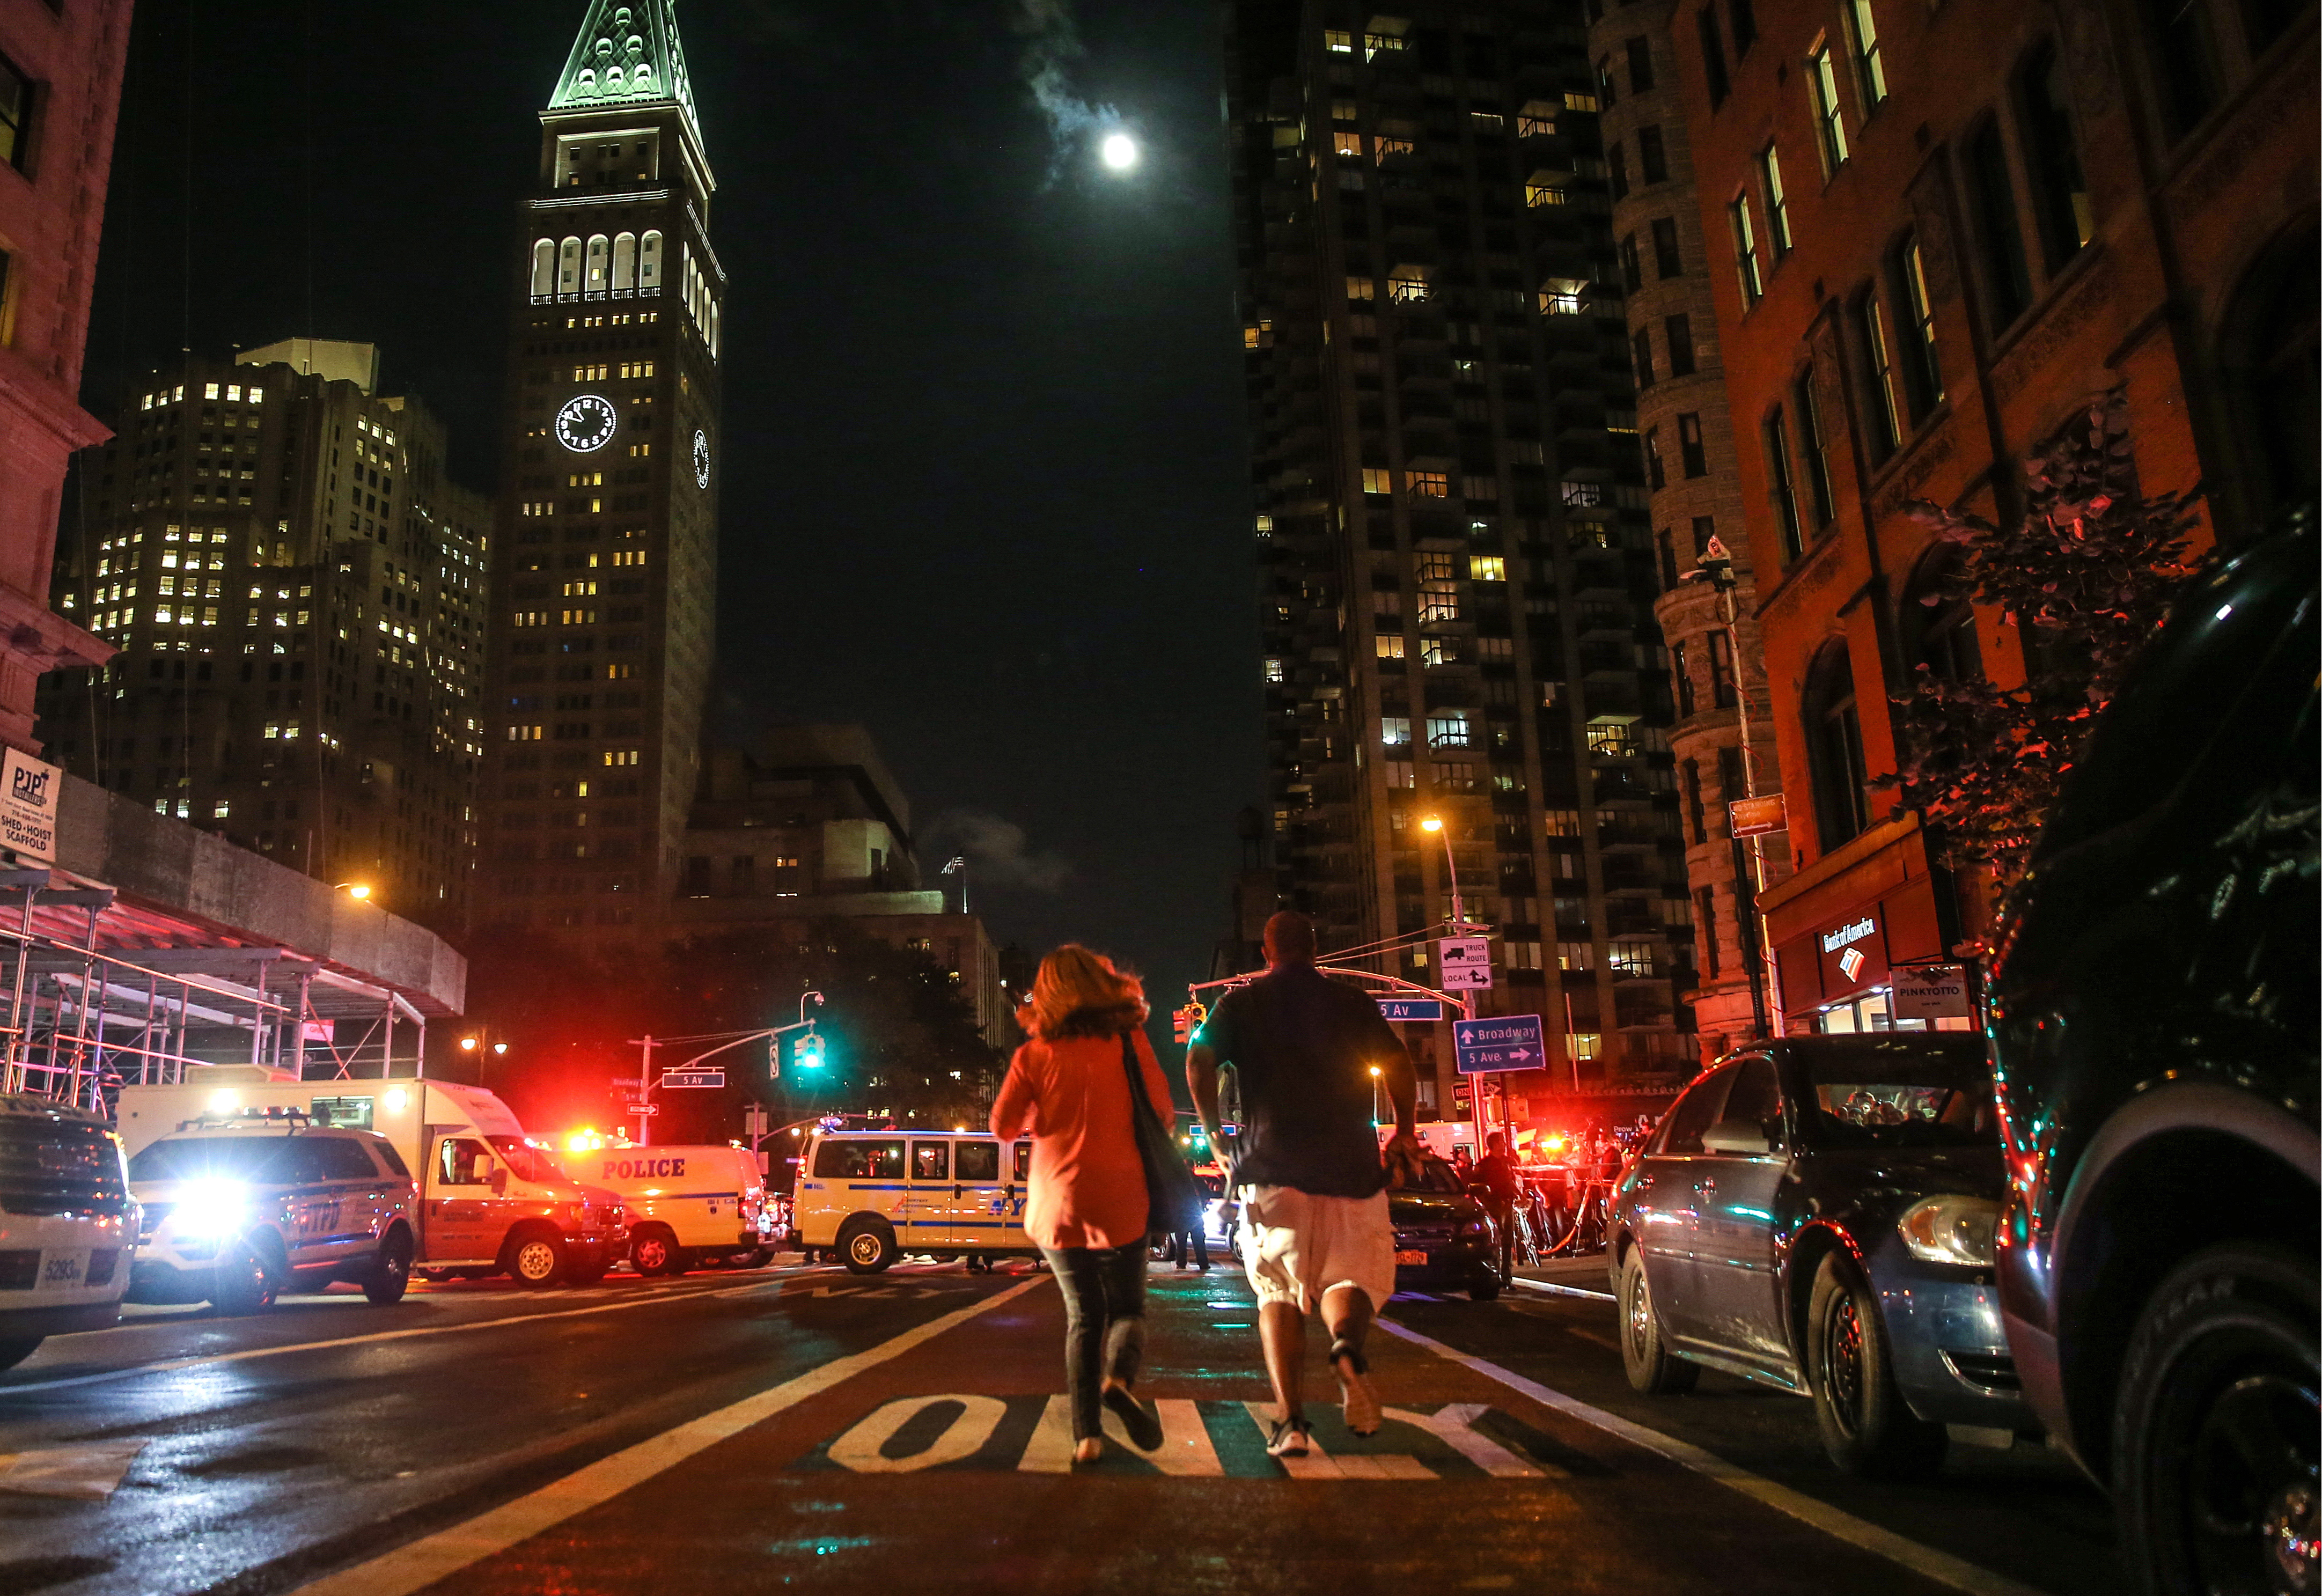 Manhattan, New York City hit by explosion